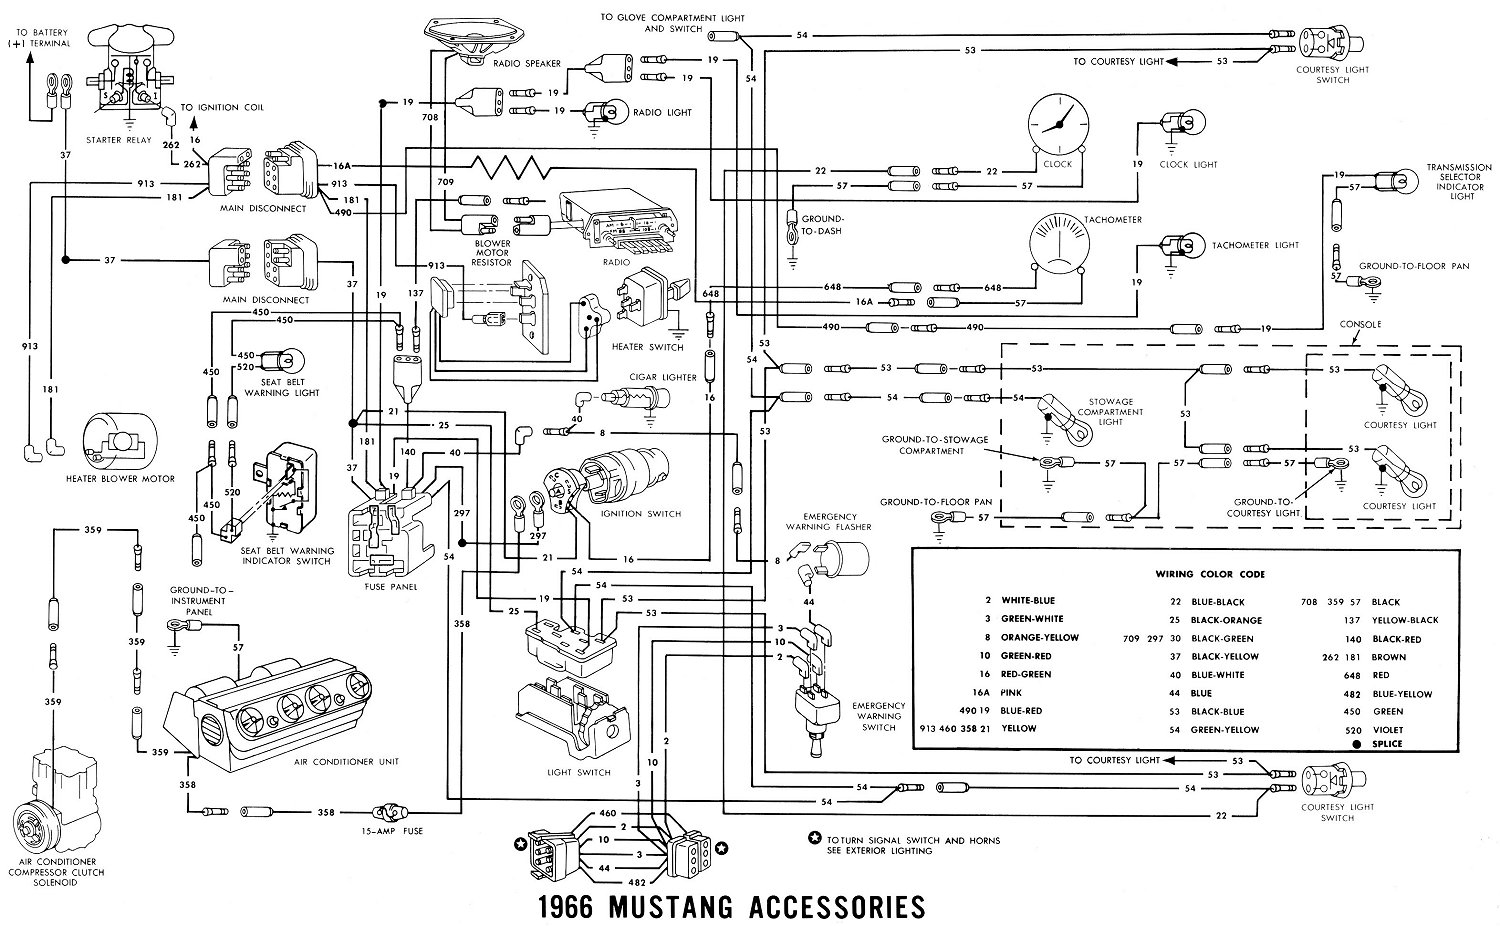 hight resolution of vintage mustang wiring diagrams 2006 f350 headlight wiring schematic 2006 f350 wiring schematics